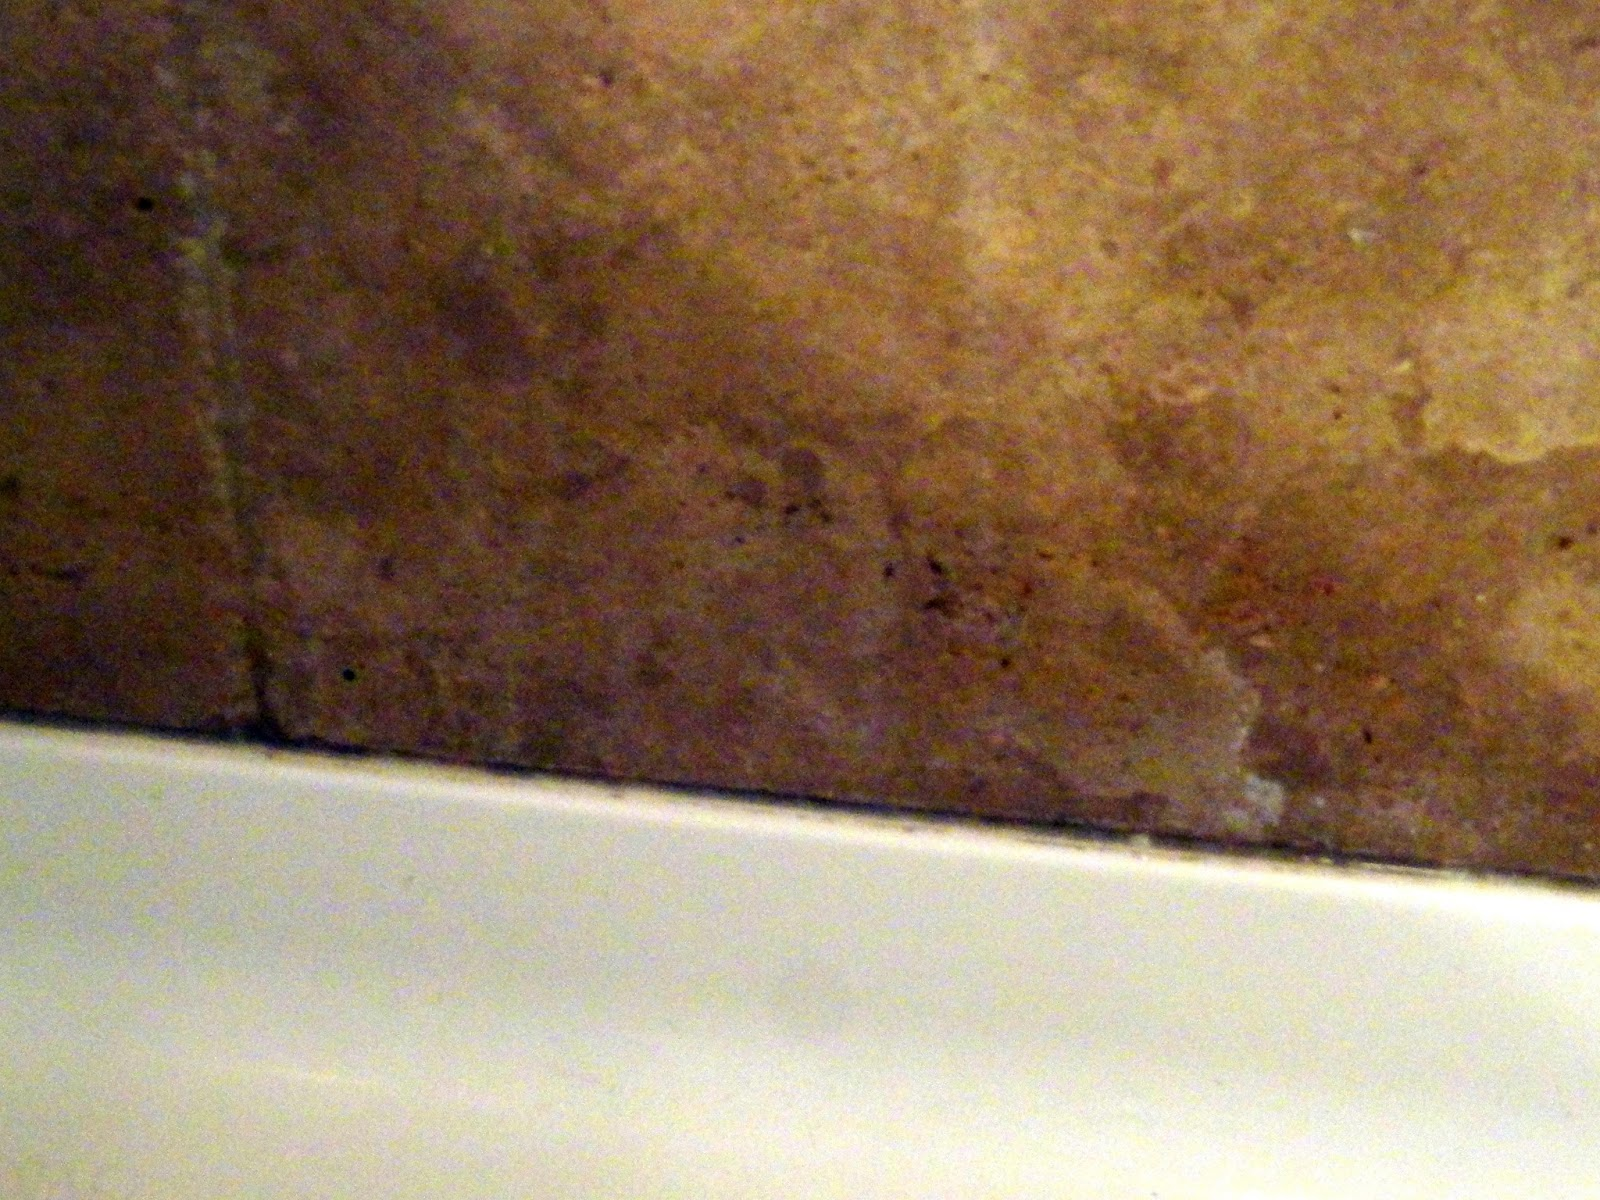 getting rid of mold in your shower rachel teodoro